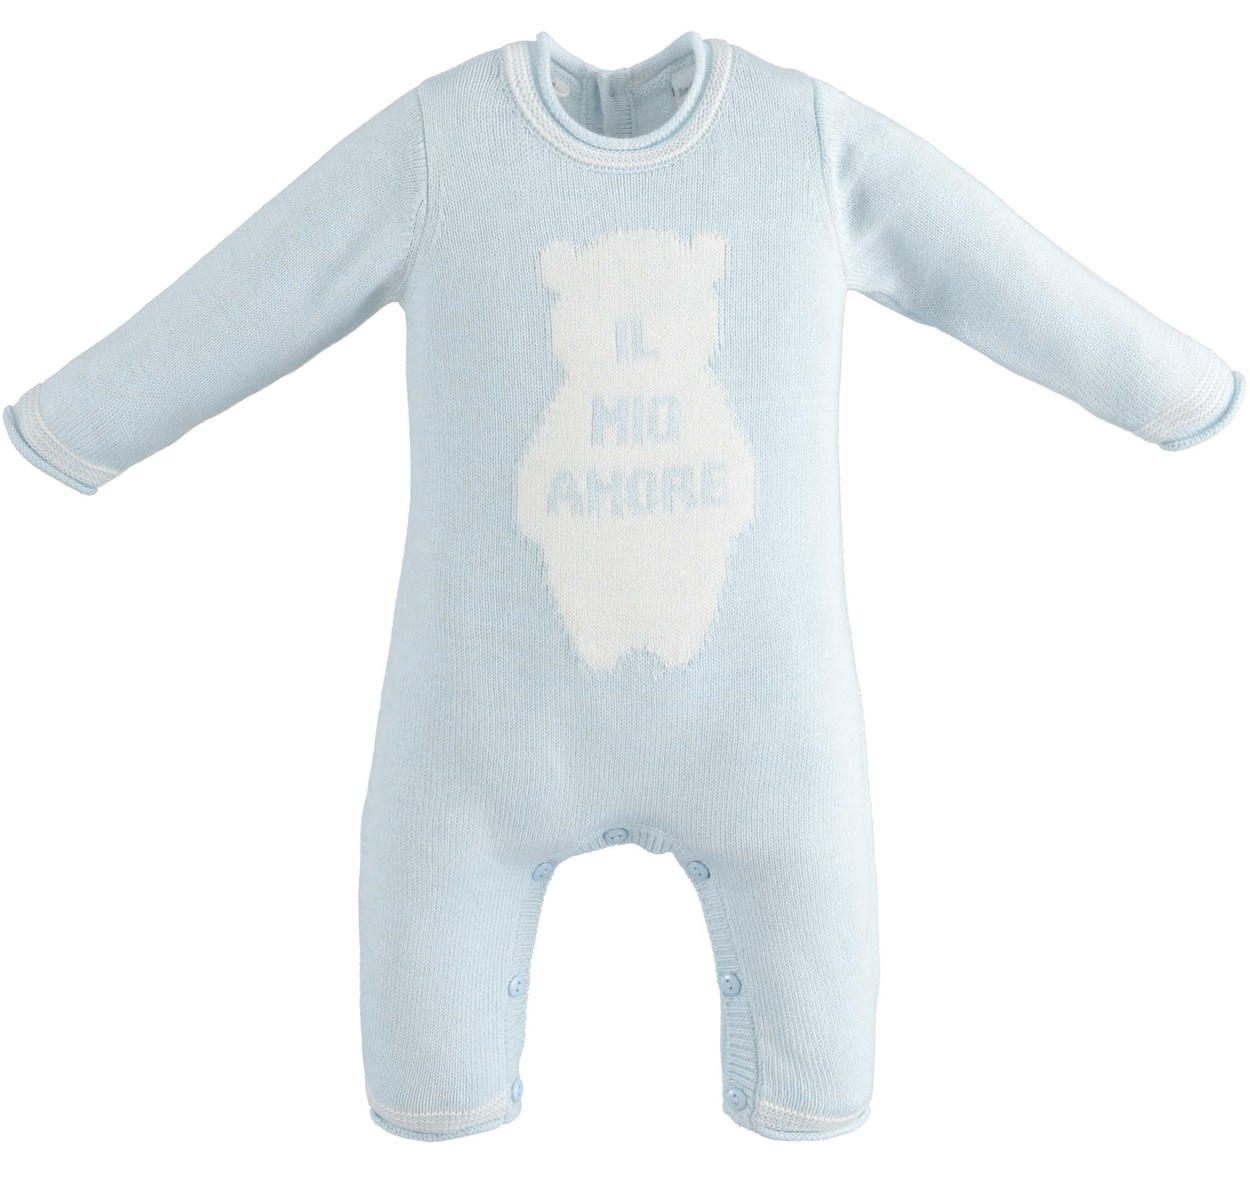 45b7c9a9e9275 Unisex model newborn baby onesie without foot made of cotton and cashmere  blend for babies from 0 to 18 months Minibanda